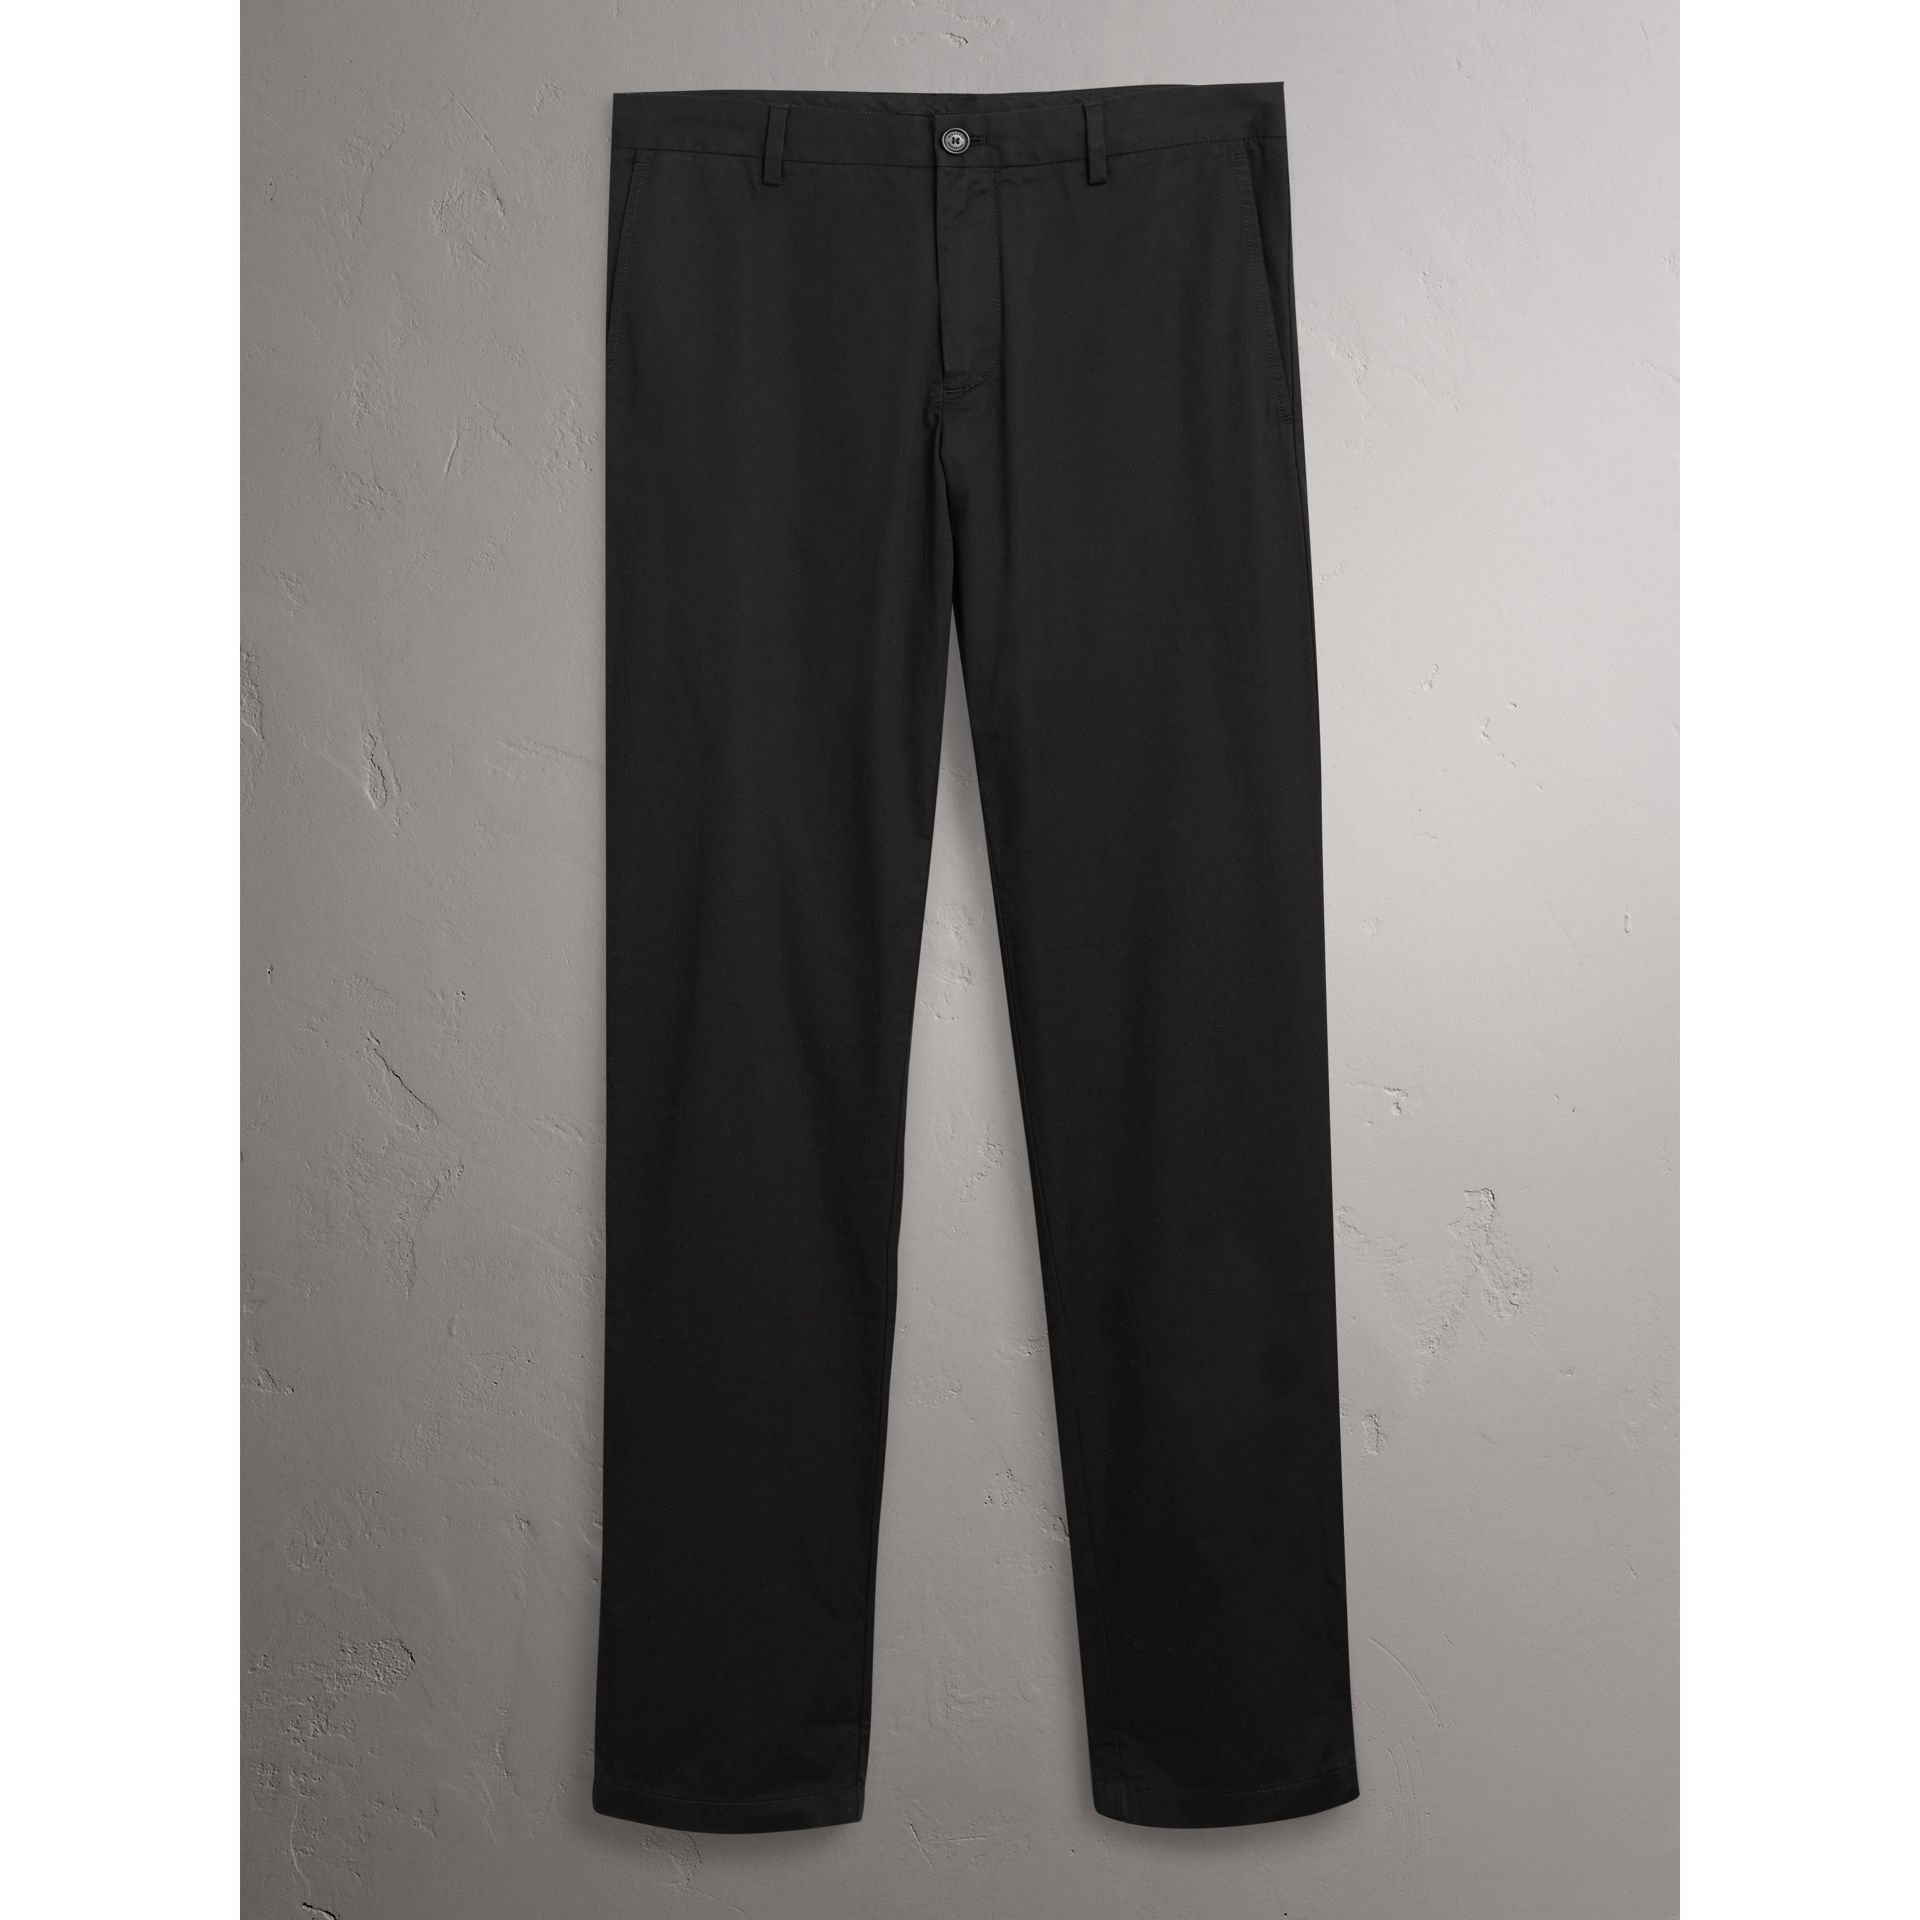 Burberry Black Slim Fit Cotton Chinos